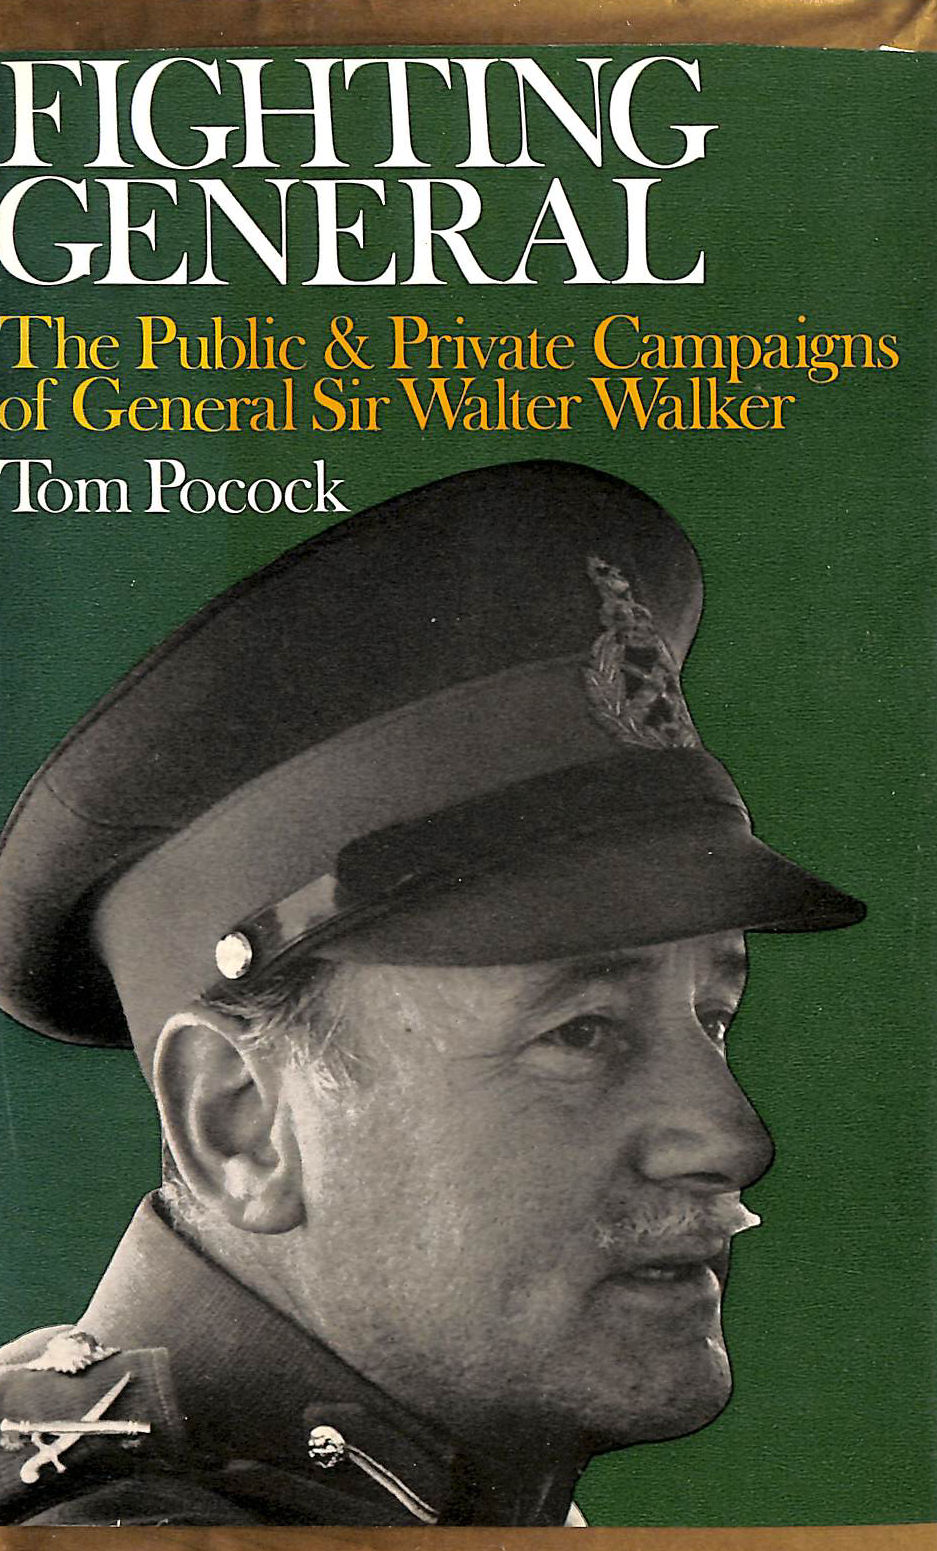 Image for Fighting General - The Public & Private Campaigns of General Sir Walter Walker